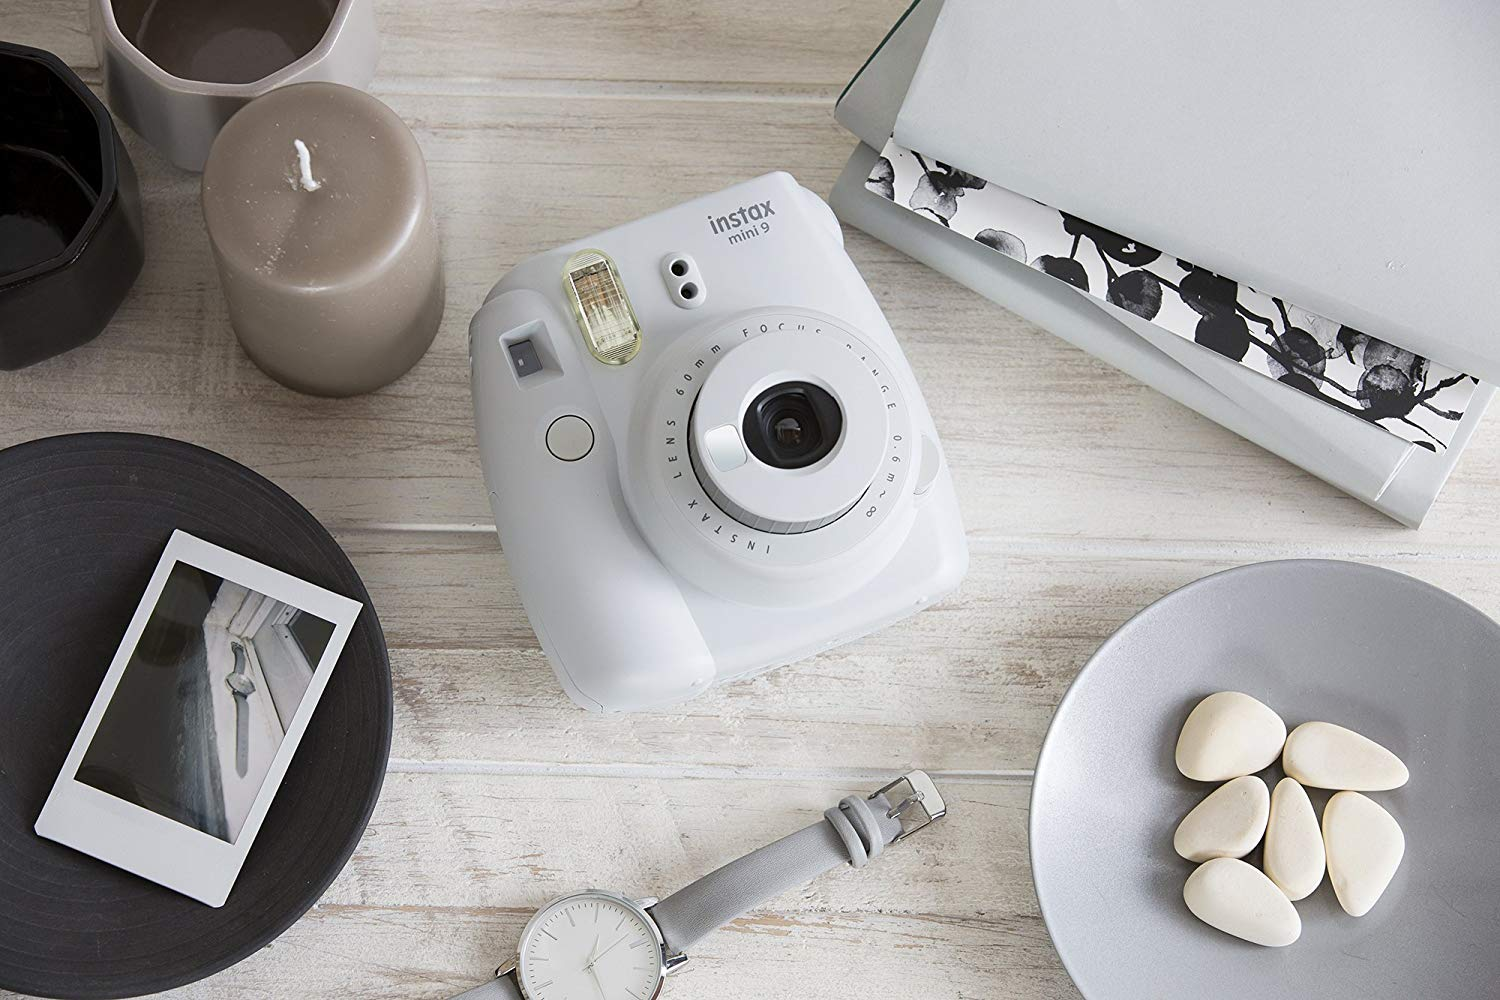 Polaroid Camera - Okay, a little bit of an investment, but if you want something that you and your SO can use together, I think a Polaroid camera would be a great idea. In the age of social media, photo-editing and face-tuning, it can be really difficult to get the instant gratification that a printed photograph brings. Polaroid photos are instantly printed memories with no filters or enhancements necessary, just life captured in its raw state. Purchasing a Polaroid camera is also an incentive to go out and make more memories with the person you love! Check out MODA's article on polaroids to help you find your perfect fit.Image via amazon.com